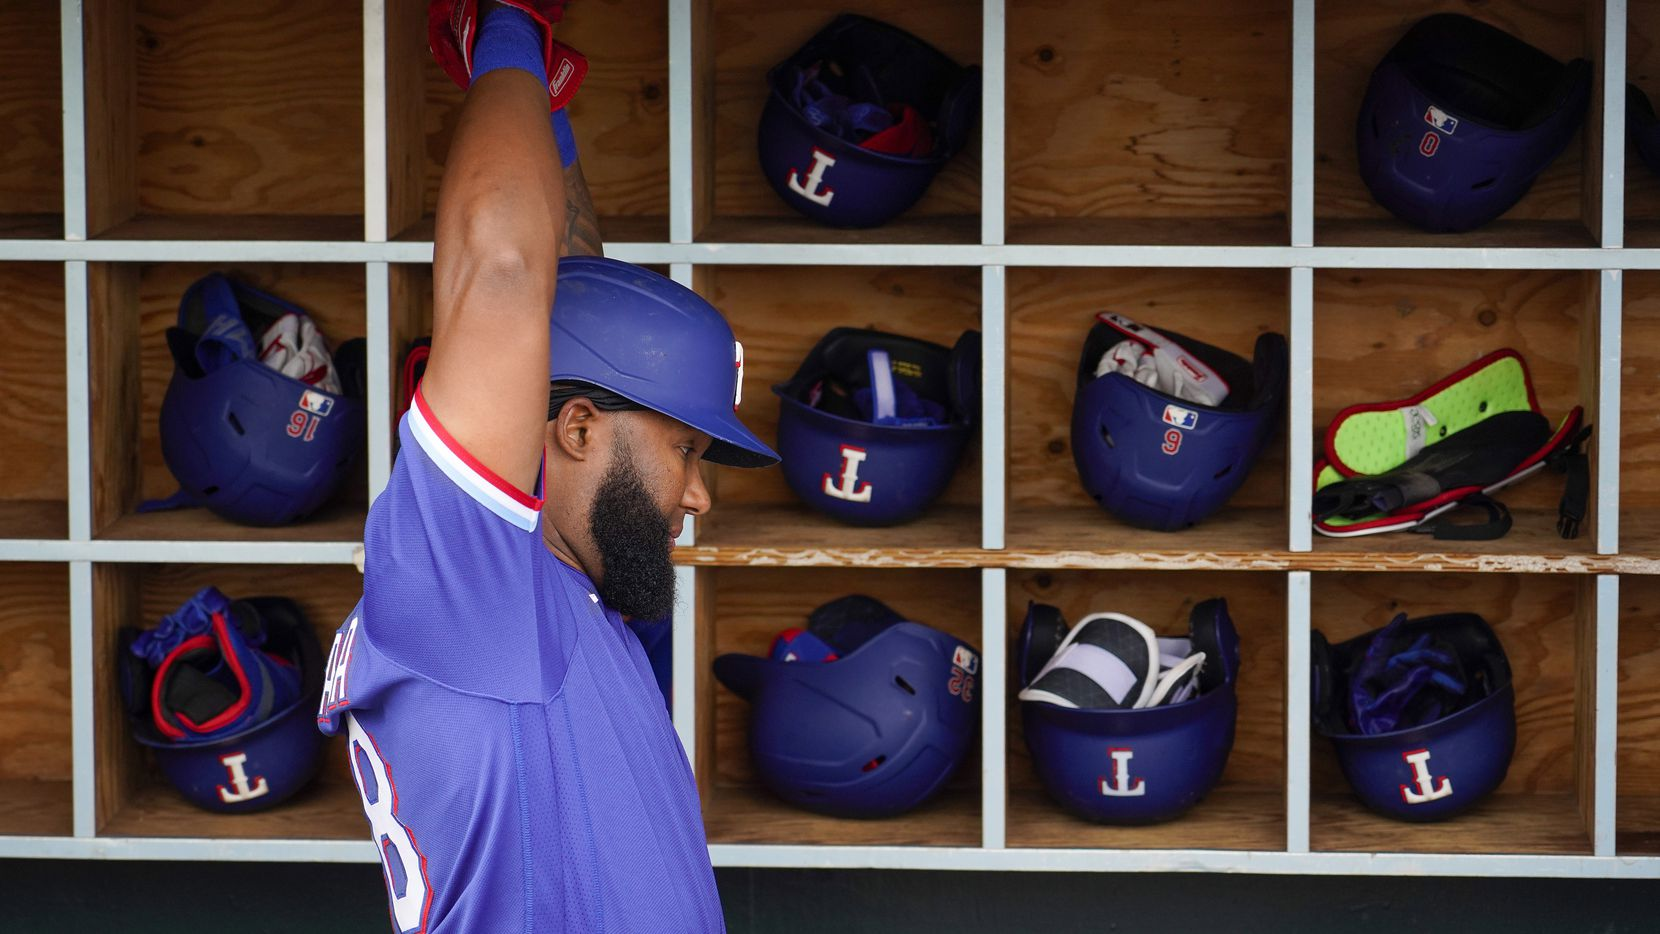 Texas Rangers outfielder Danny Santana stretches in the dugout before a spring training game against the Los Angeles Angels at Tempe Diablo Stadium on Friday, Feb. 28, 2020, in Tempe, Ariz.